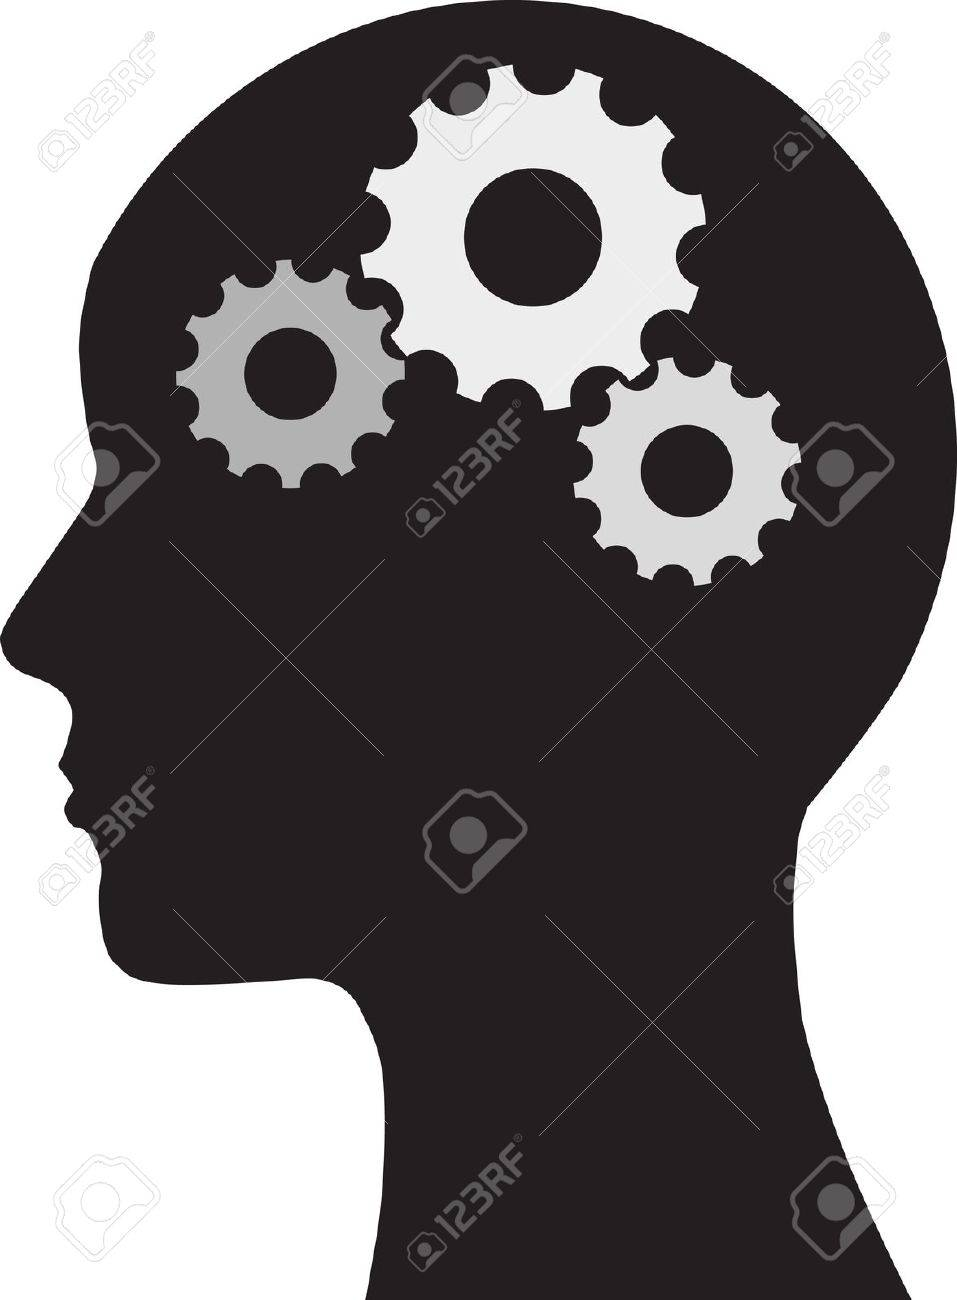 Man And Brain Royalty Free Cliparts, Vectors, And Stock ...